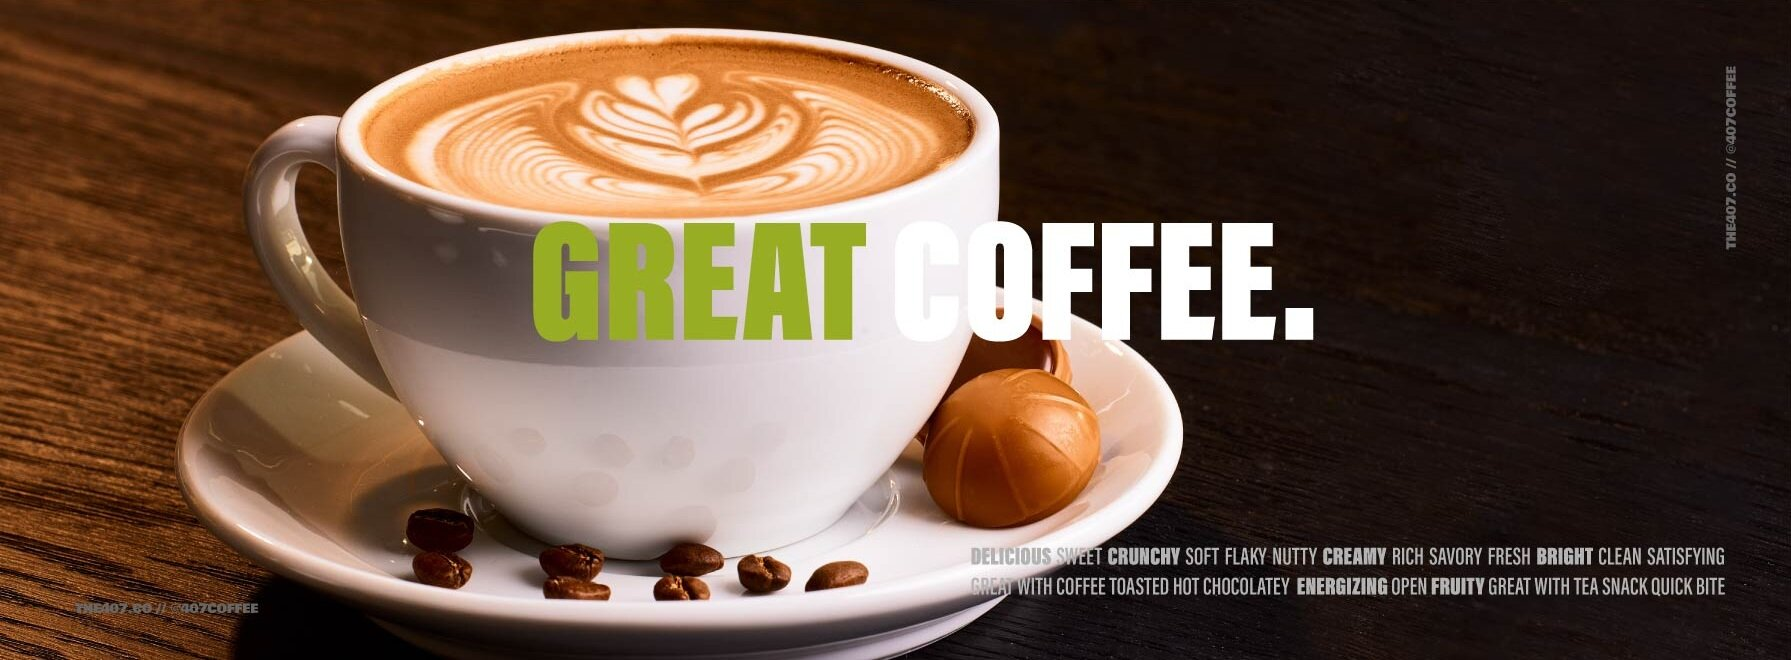 407 FB Cover_GREATCOFFEE-01.jpg